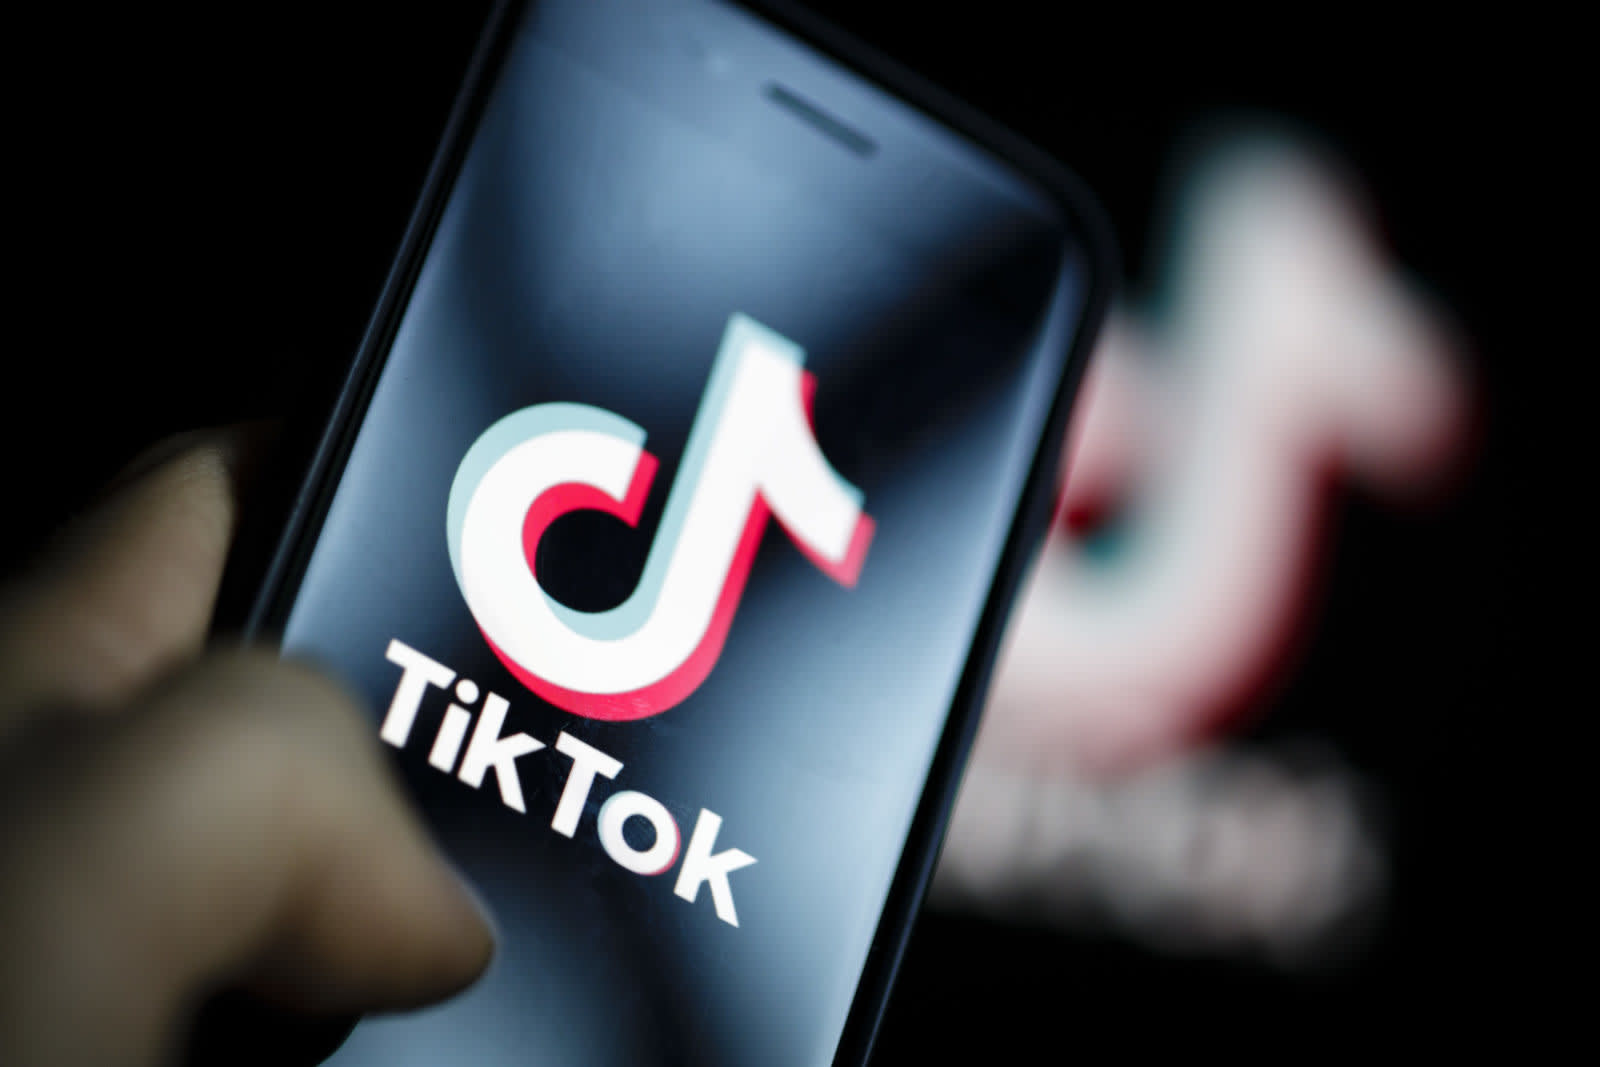 Photo of U.S. Army expands ban on TikTok use at supply terminals. The Air Force and Coast Guard follow the banned land, navy and marines-Engadget Japan